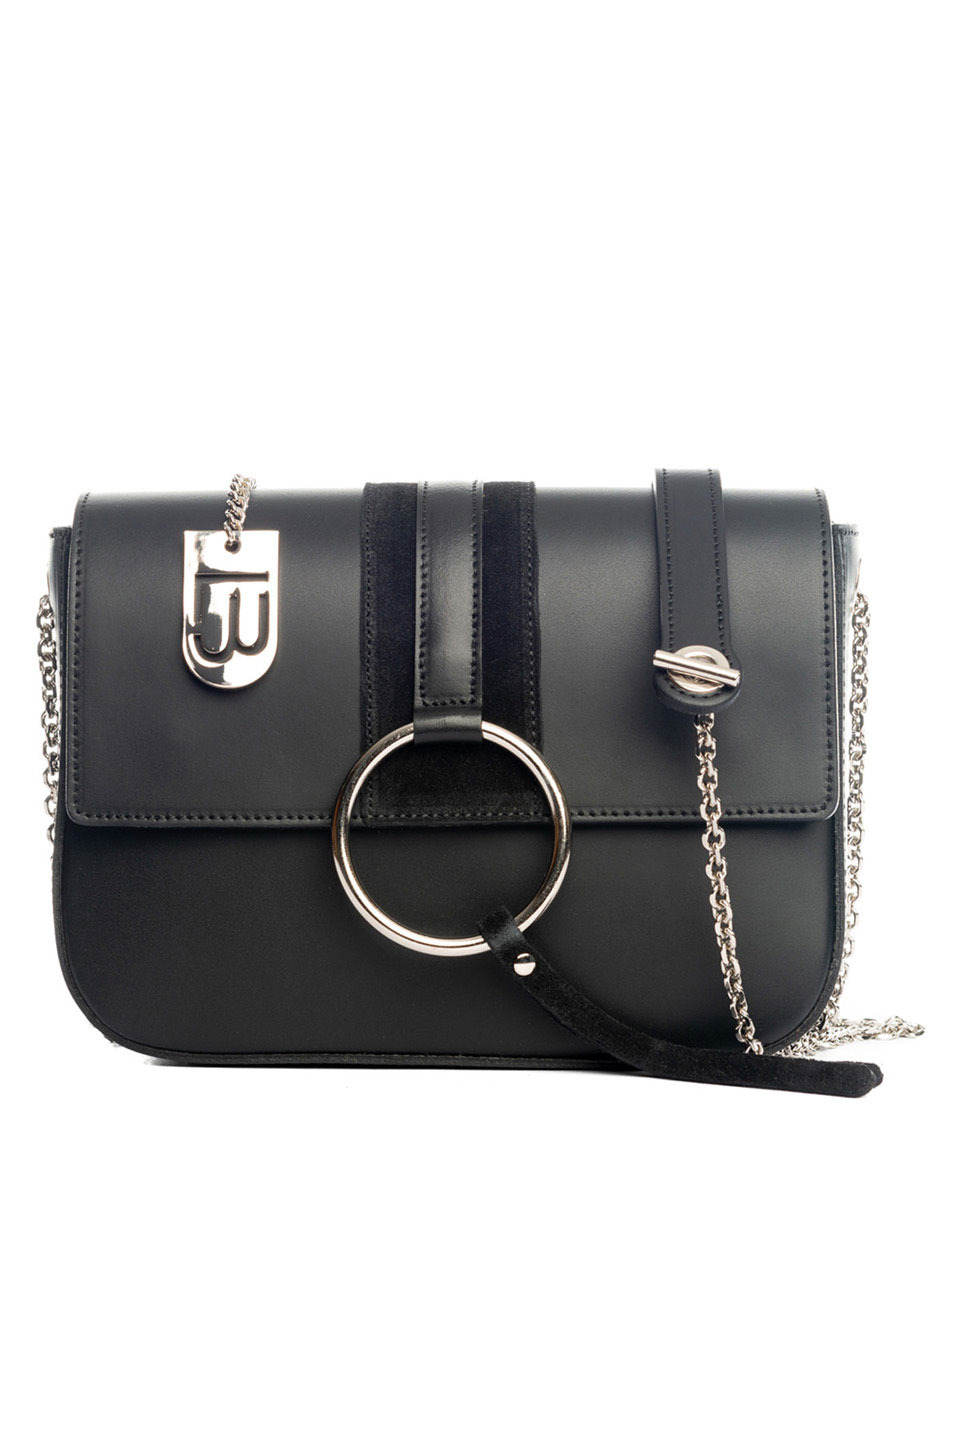 SANTA FIORA HANDBAG IN BLACK